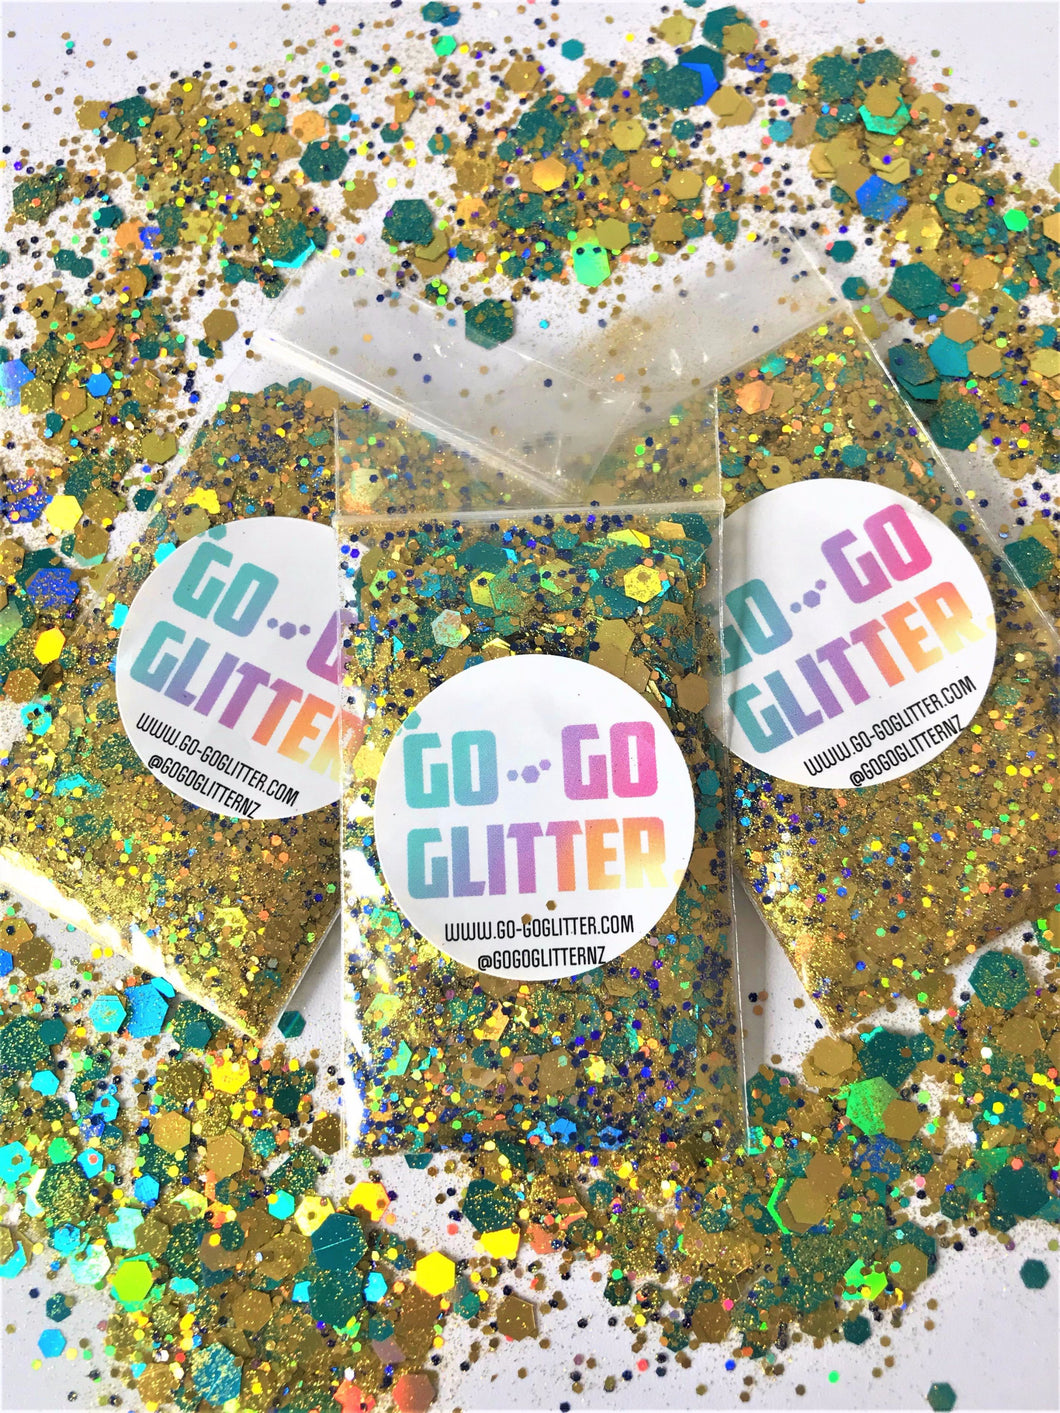 ✦ TREASURE CHEST ✦ FACE, BODY & HAIR GLITTER - Go-Go Glitter NZ Festival Glitter New Zealand GOGOGLITTER Go Go Glitter